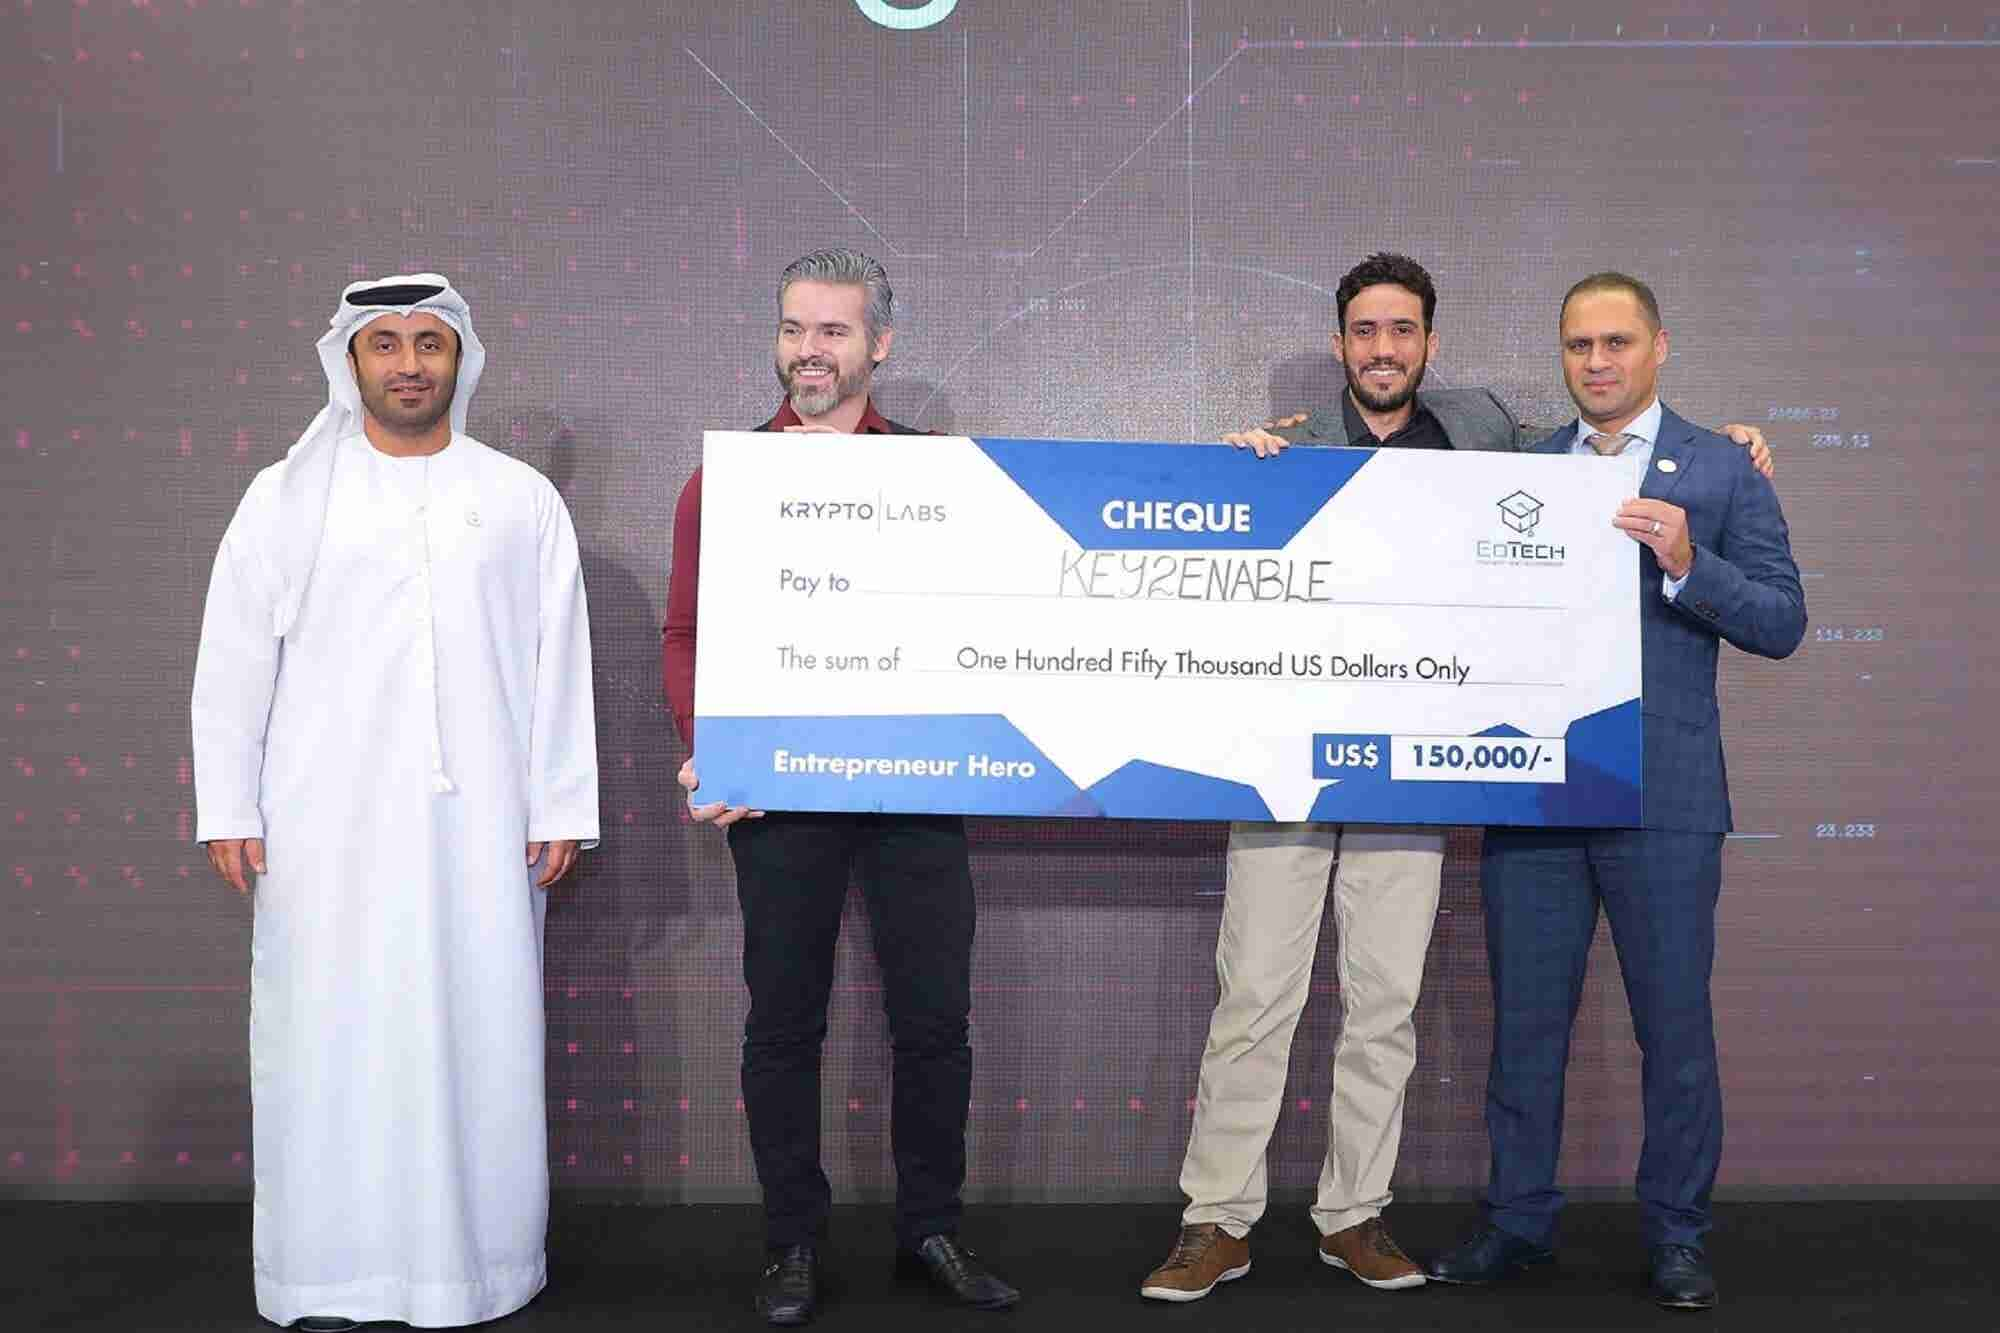 Brazil's Key2Enable Wins The EdTech Innovation Startup Competition 2018 by Krypto Labs